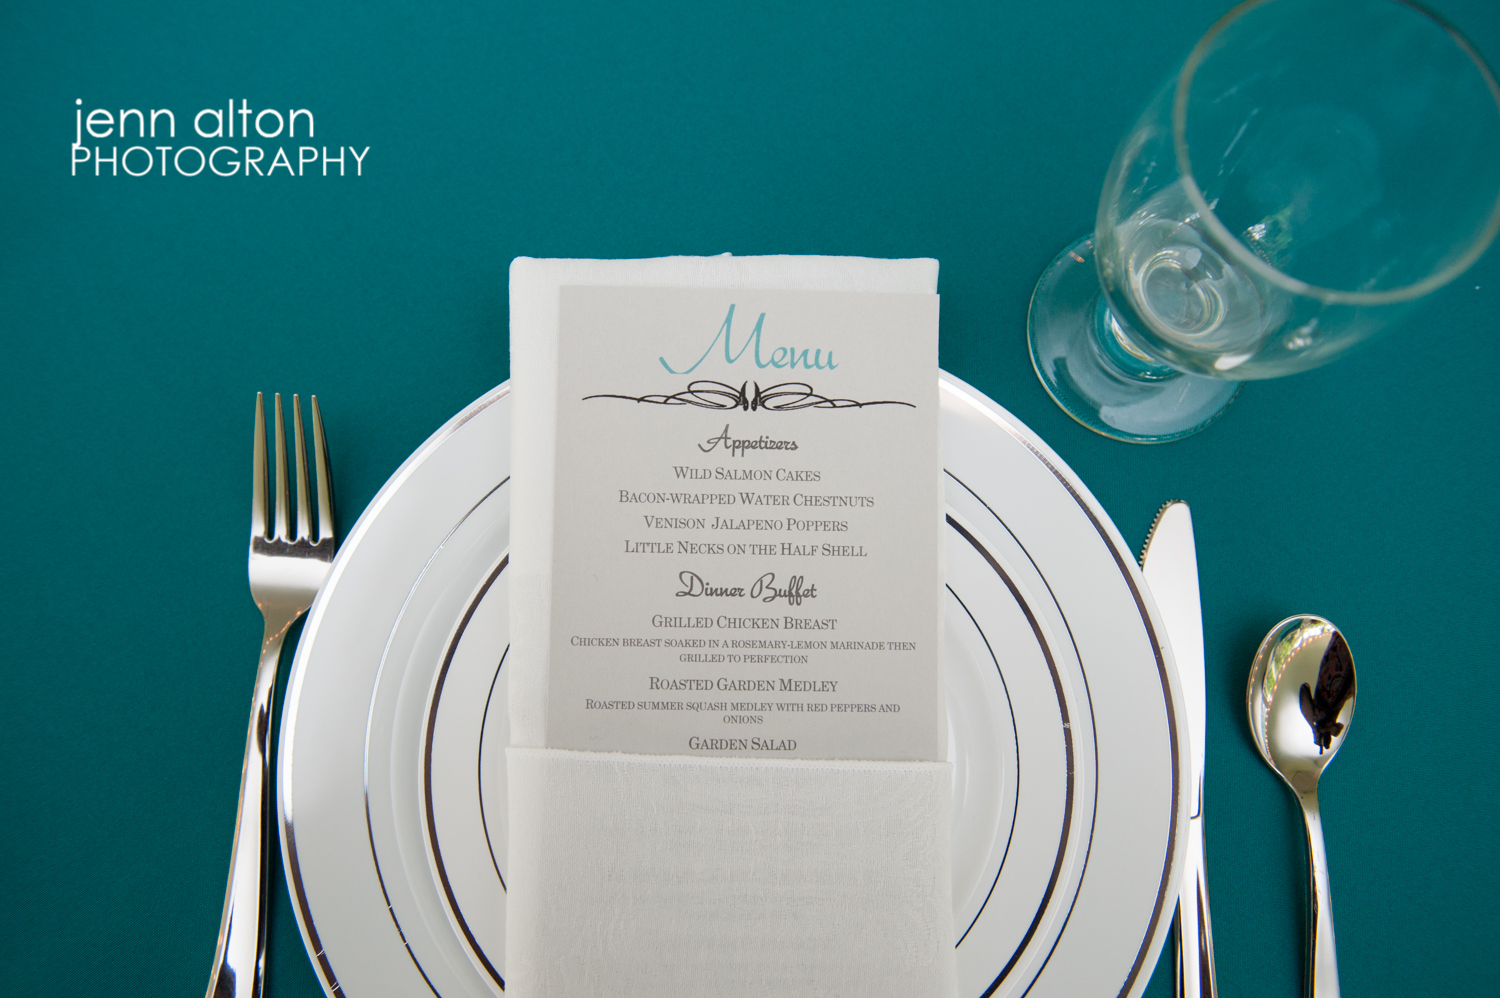 Menu card in teal/aqua theme with plate setting for Cape Cod Wedding